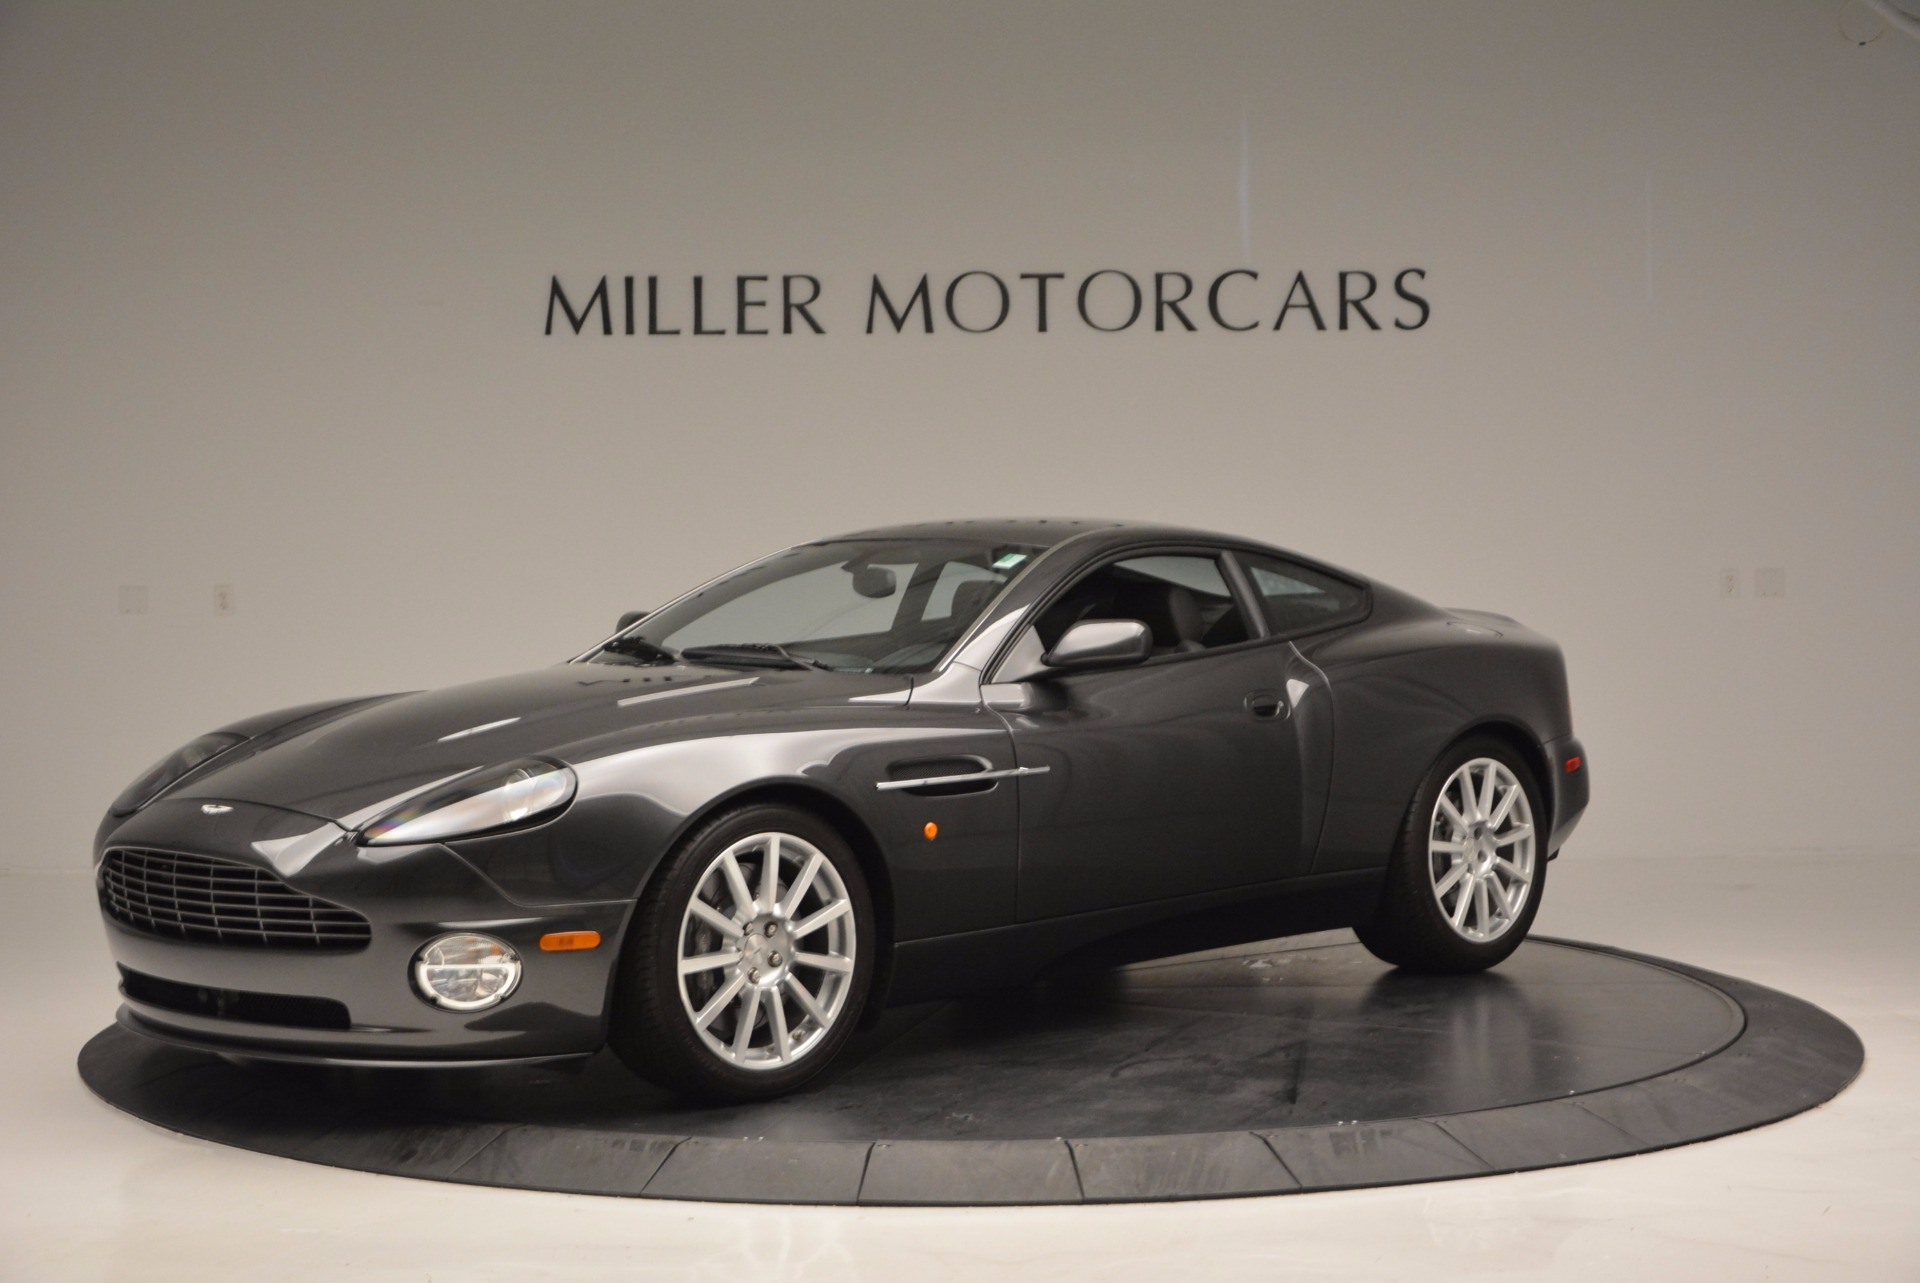 Used 2005 Aston Martin V12 Vanquish S For Sale In Greenwich, CT 645_p2